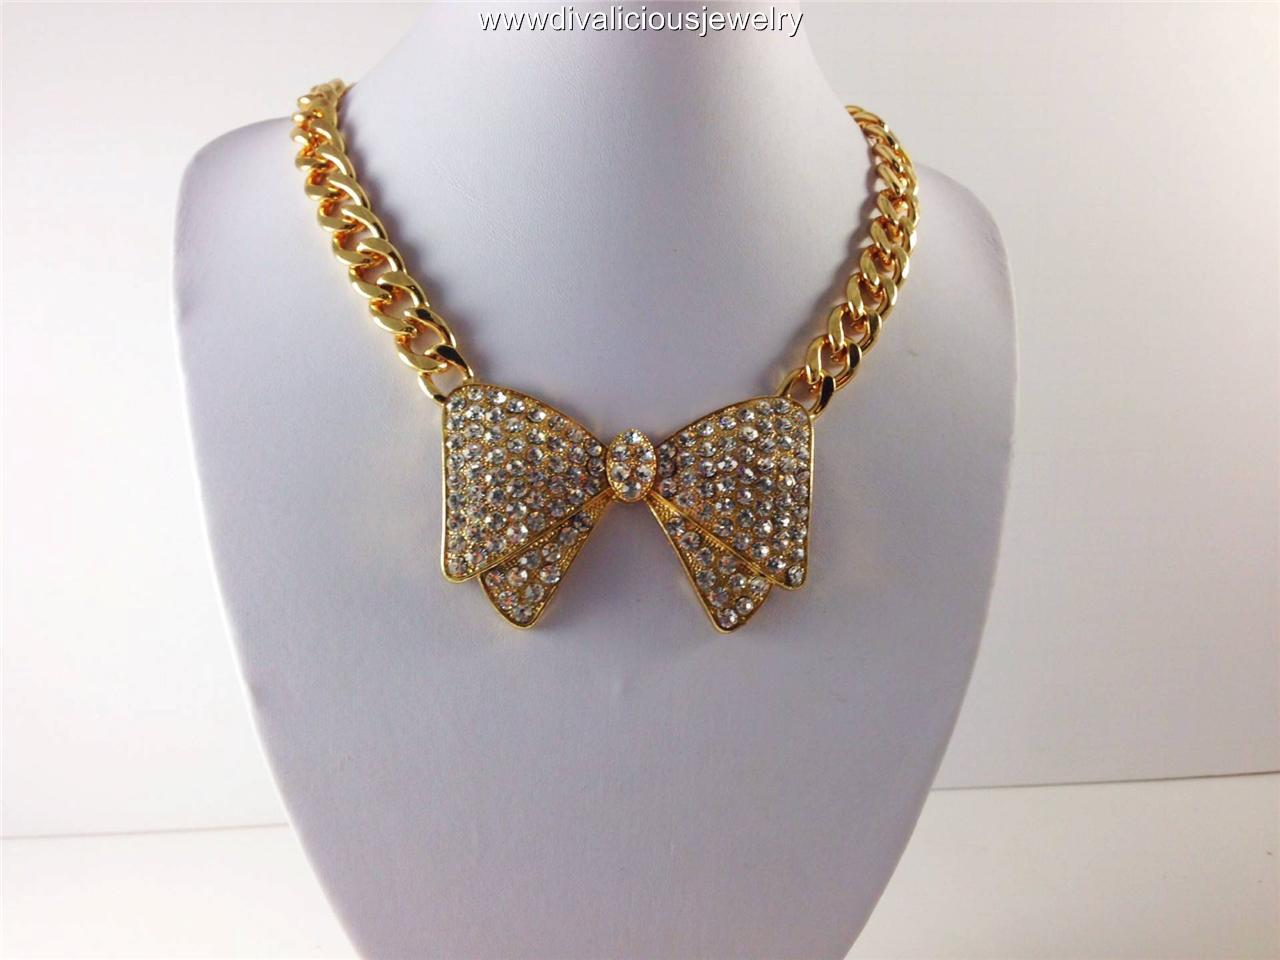 Crystal Ritz Bow Tie Bling Diva Necklace - Gold or Silver